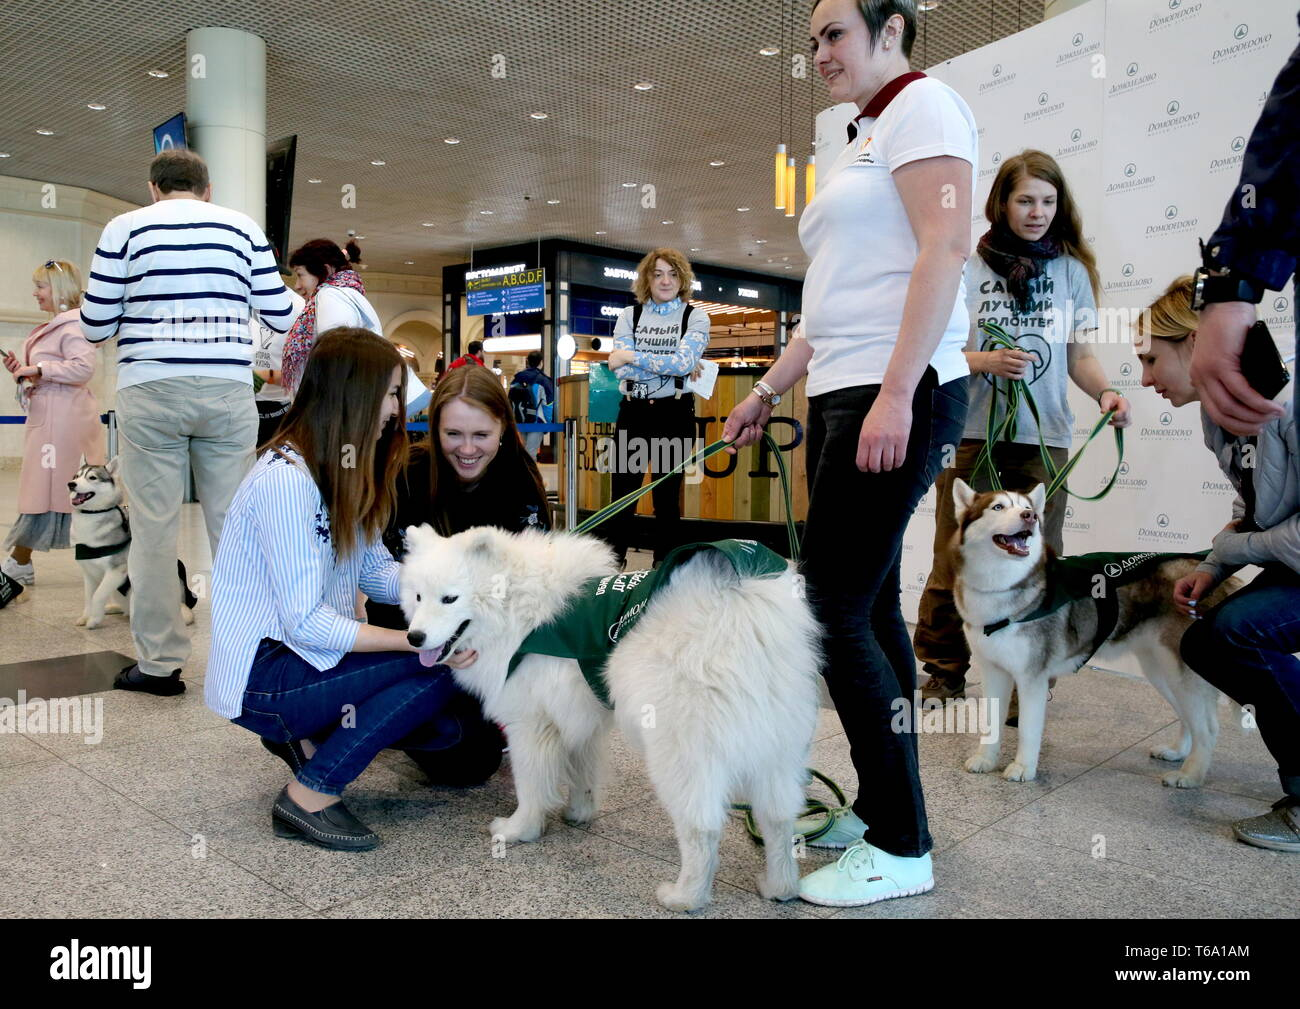 Russia. 30th Apr, 2019. MOSCOW REGION, RUSSIA - APRIL 30, 2019: A passenger strokes a Samoyed dog to overcome the fear of flying during a campaign at Moscow's Domodedovo International Airport. Vladimir Gerdo/TASS Credit: ITAR-TASS News Agency/Alamy Live News - Stock Image